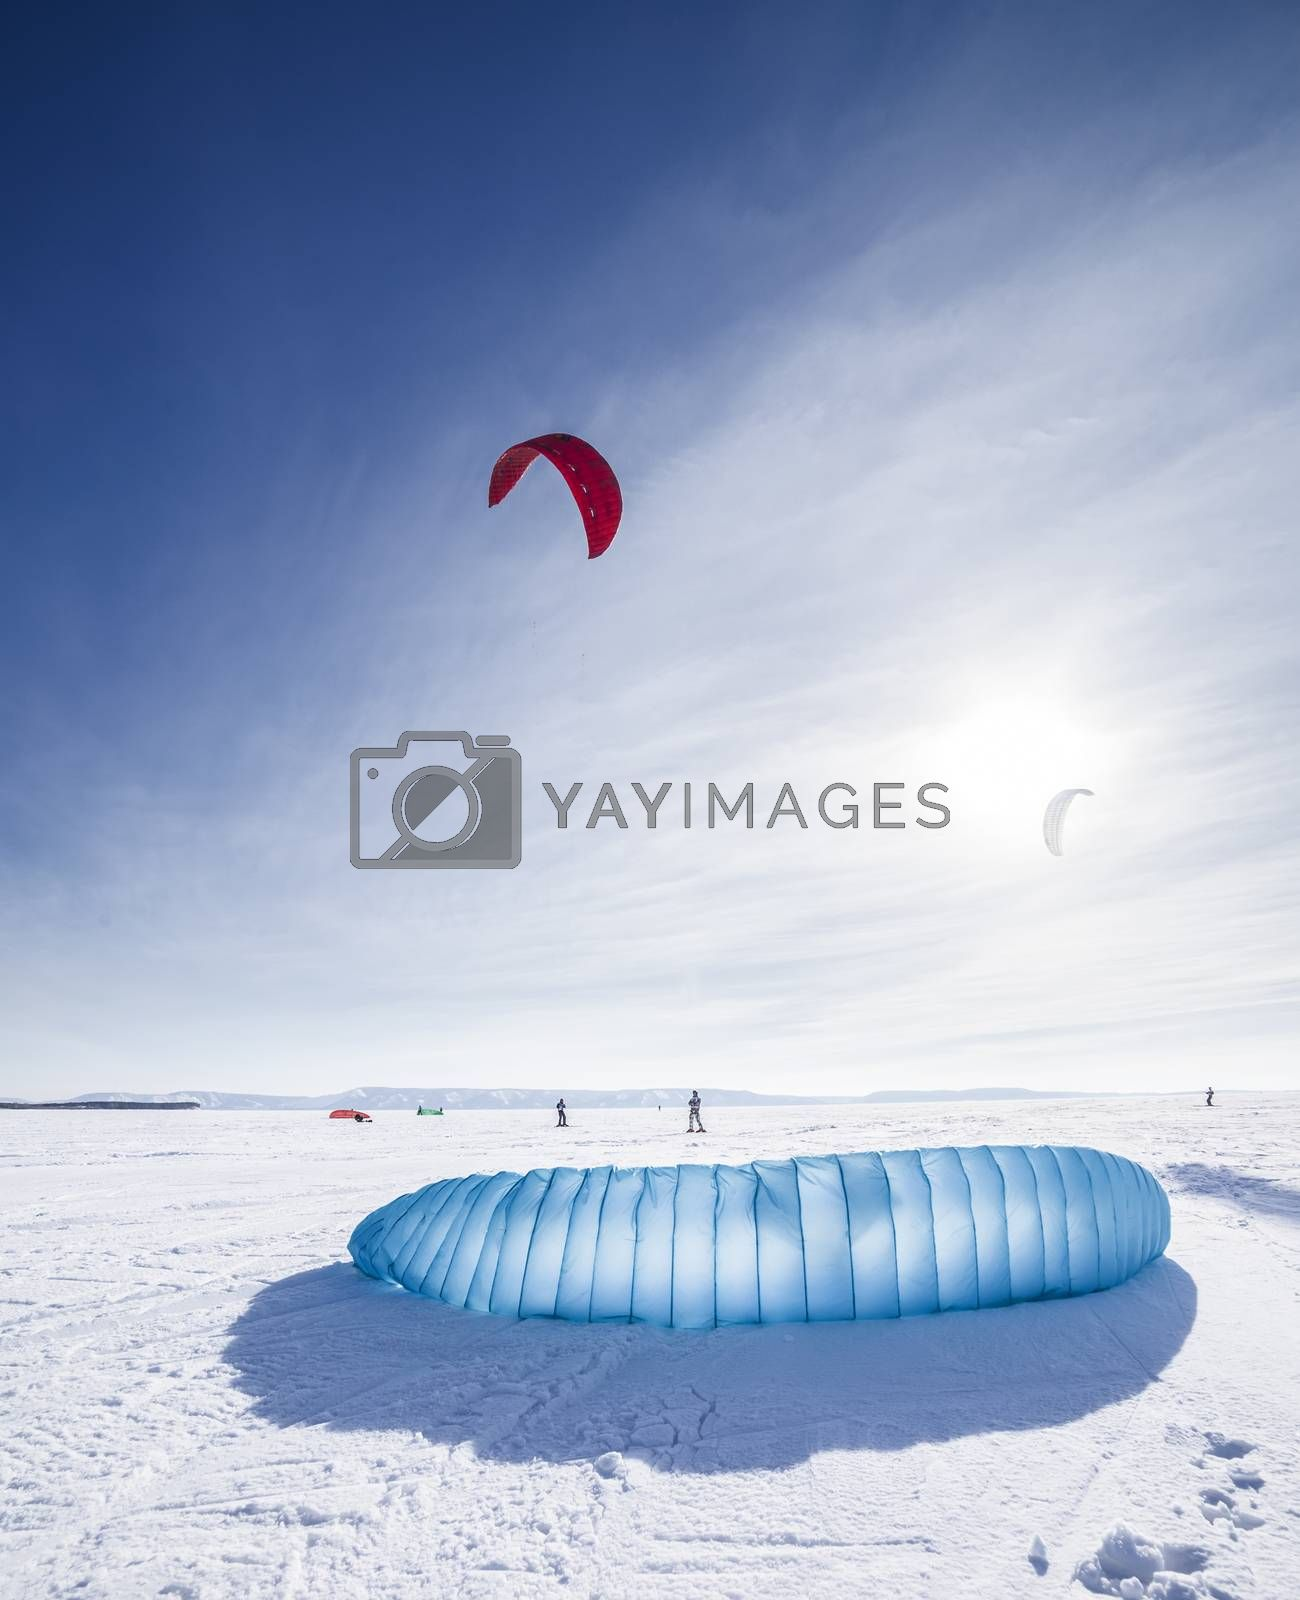 Royalty free image of Kiteboarder with blue kite on the snow by H2Oshka